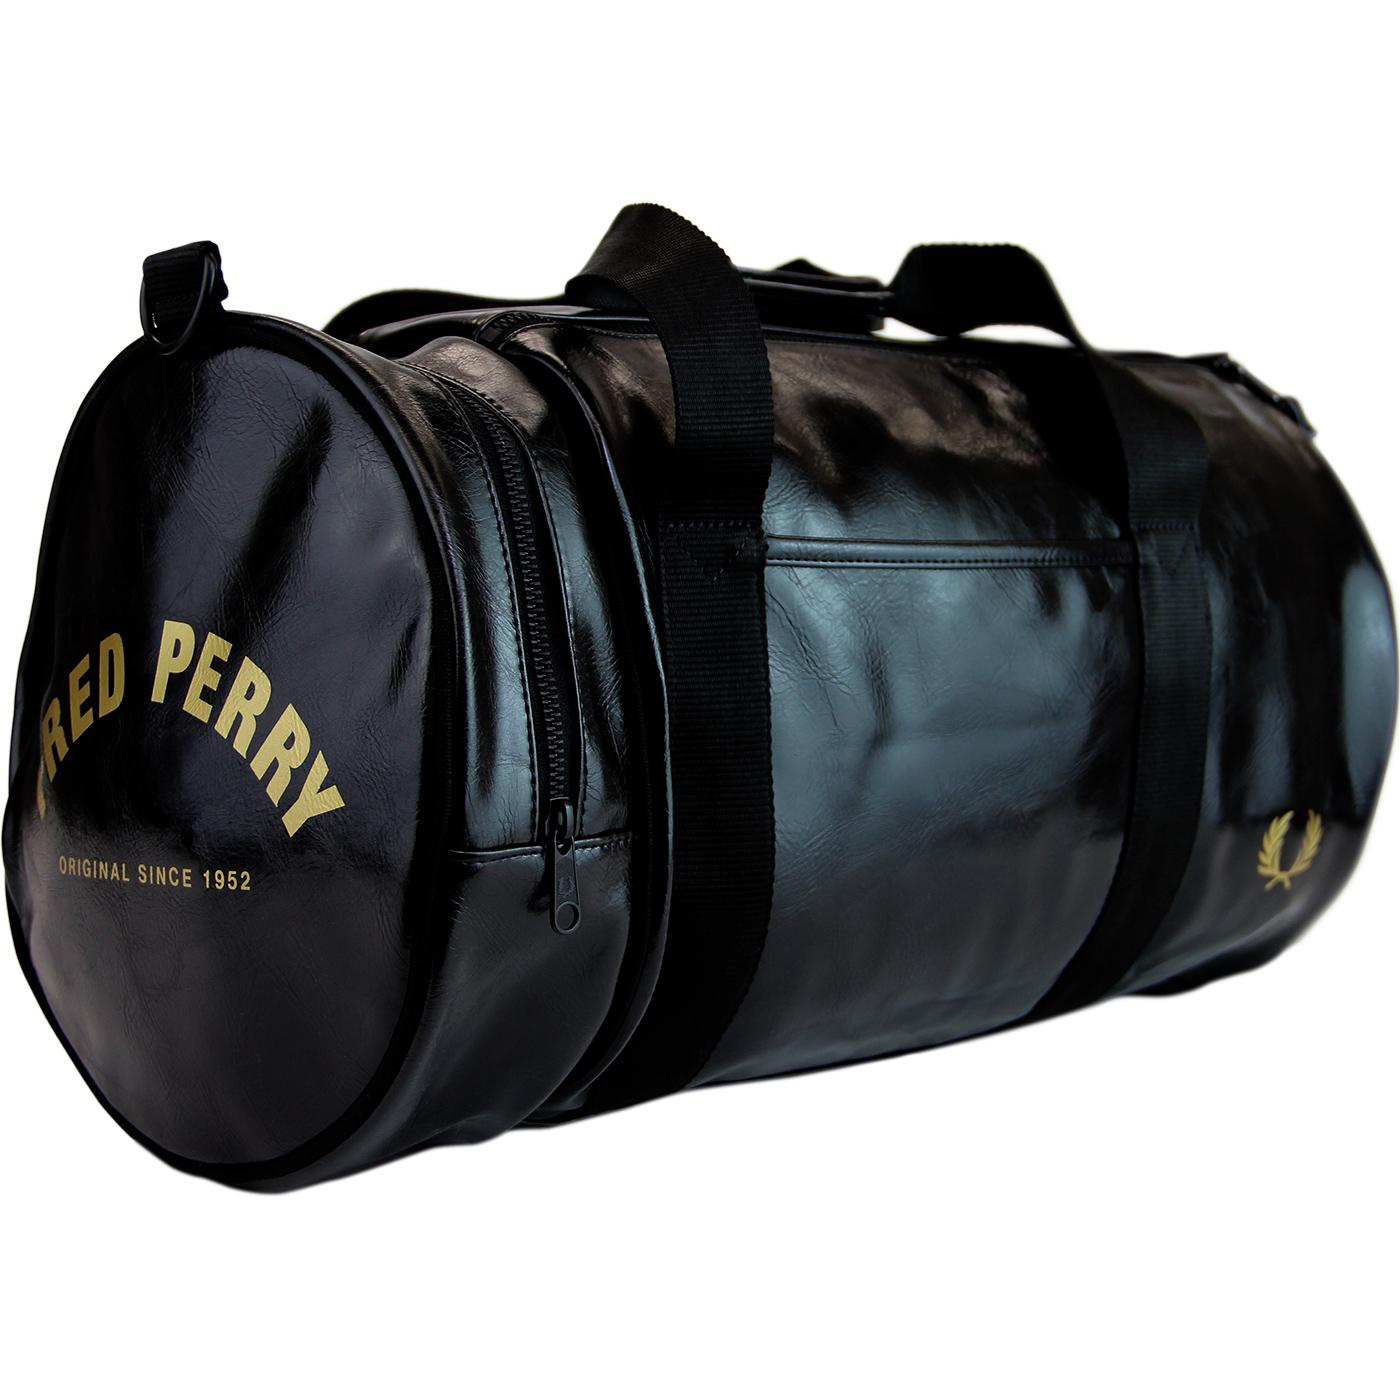 FRED PERRY Retro Classic Barrel Bag - Black/Gold